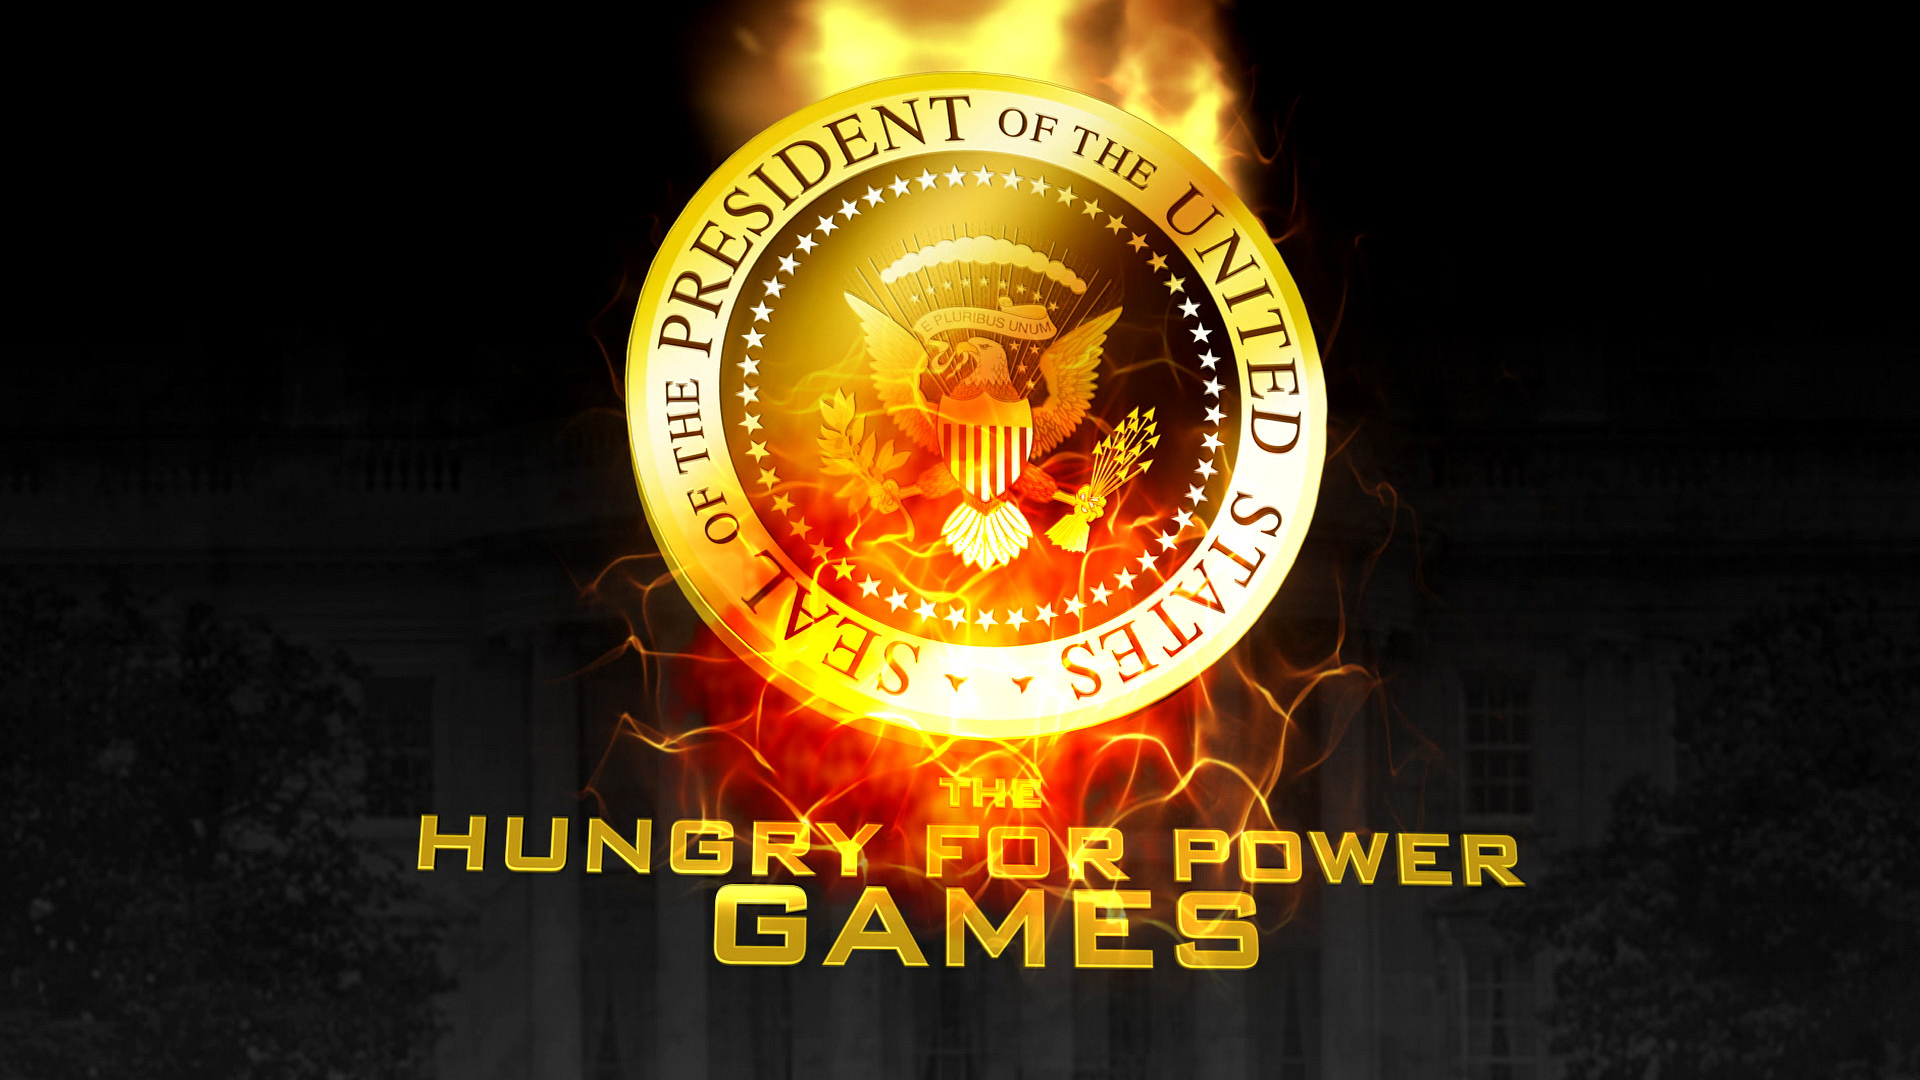 The Hungry For Power Games